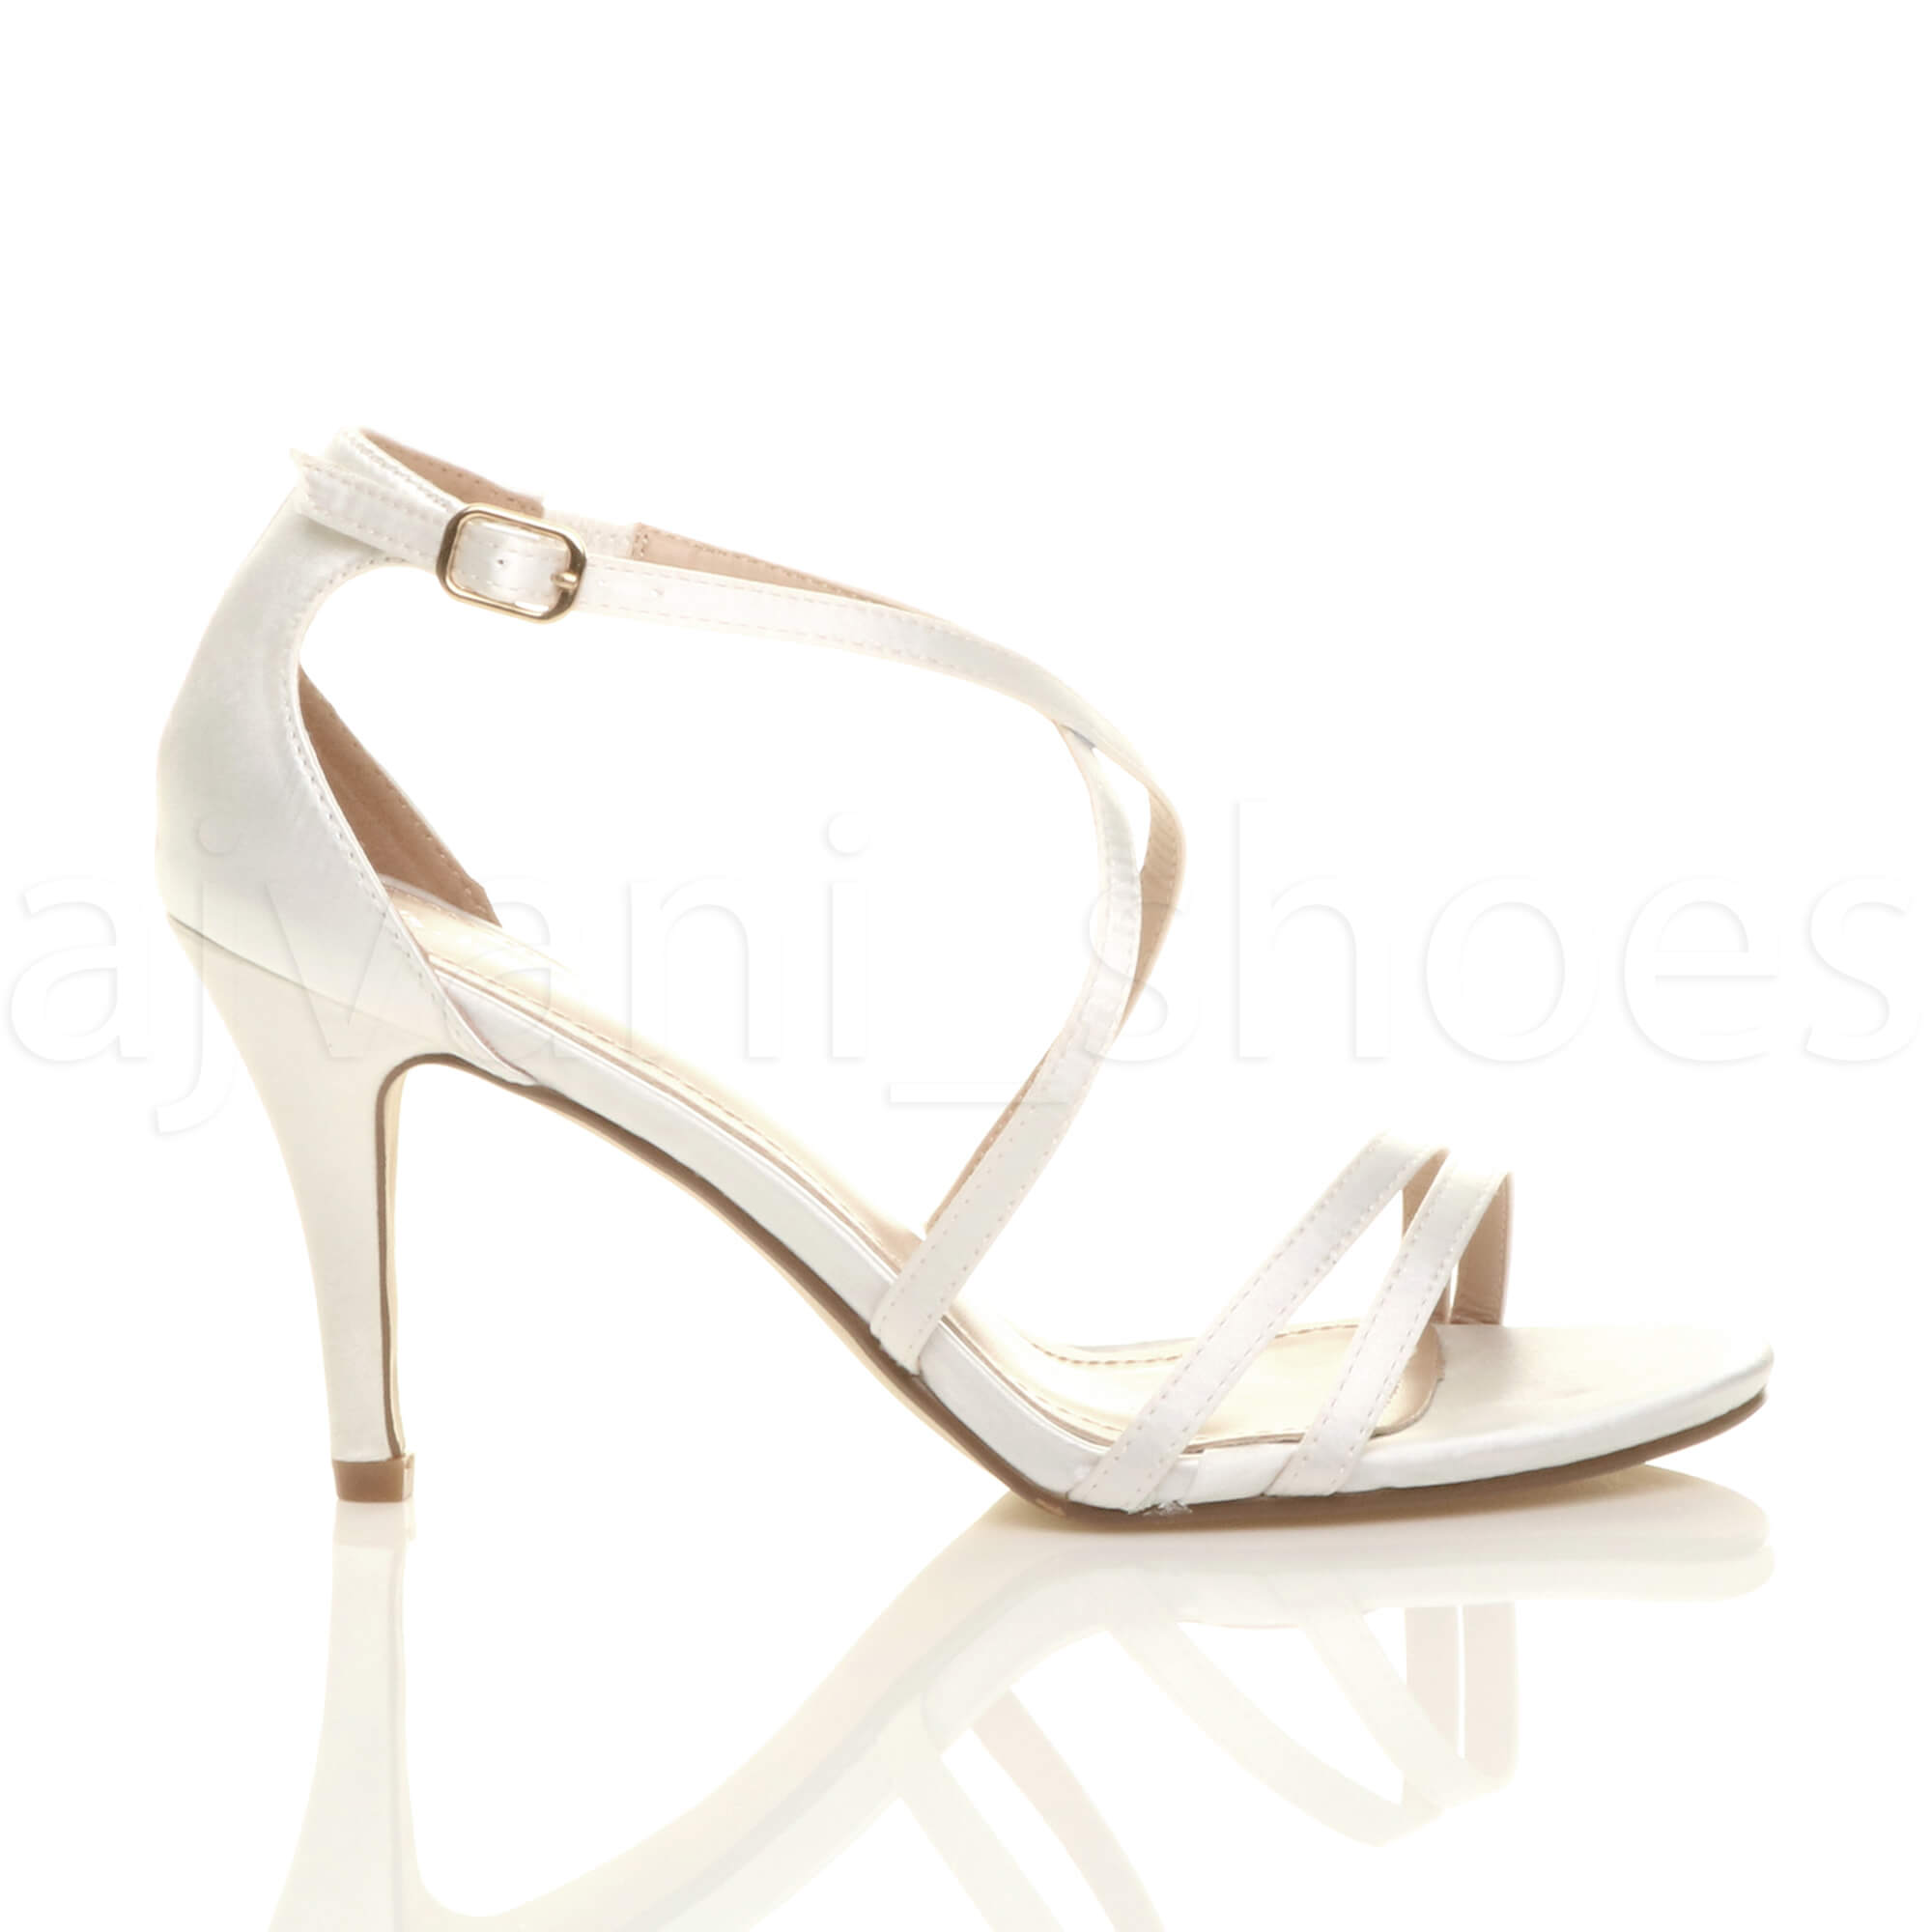 WOMENS-LADIES-MID-HIGH-HEEL-STRAPPY-CROSSOVER-WEDDING-PROM-SANDALS-SHOES-SIZE